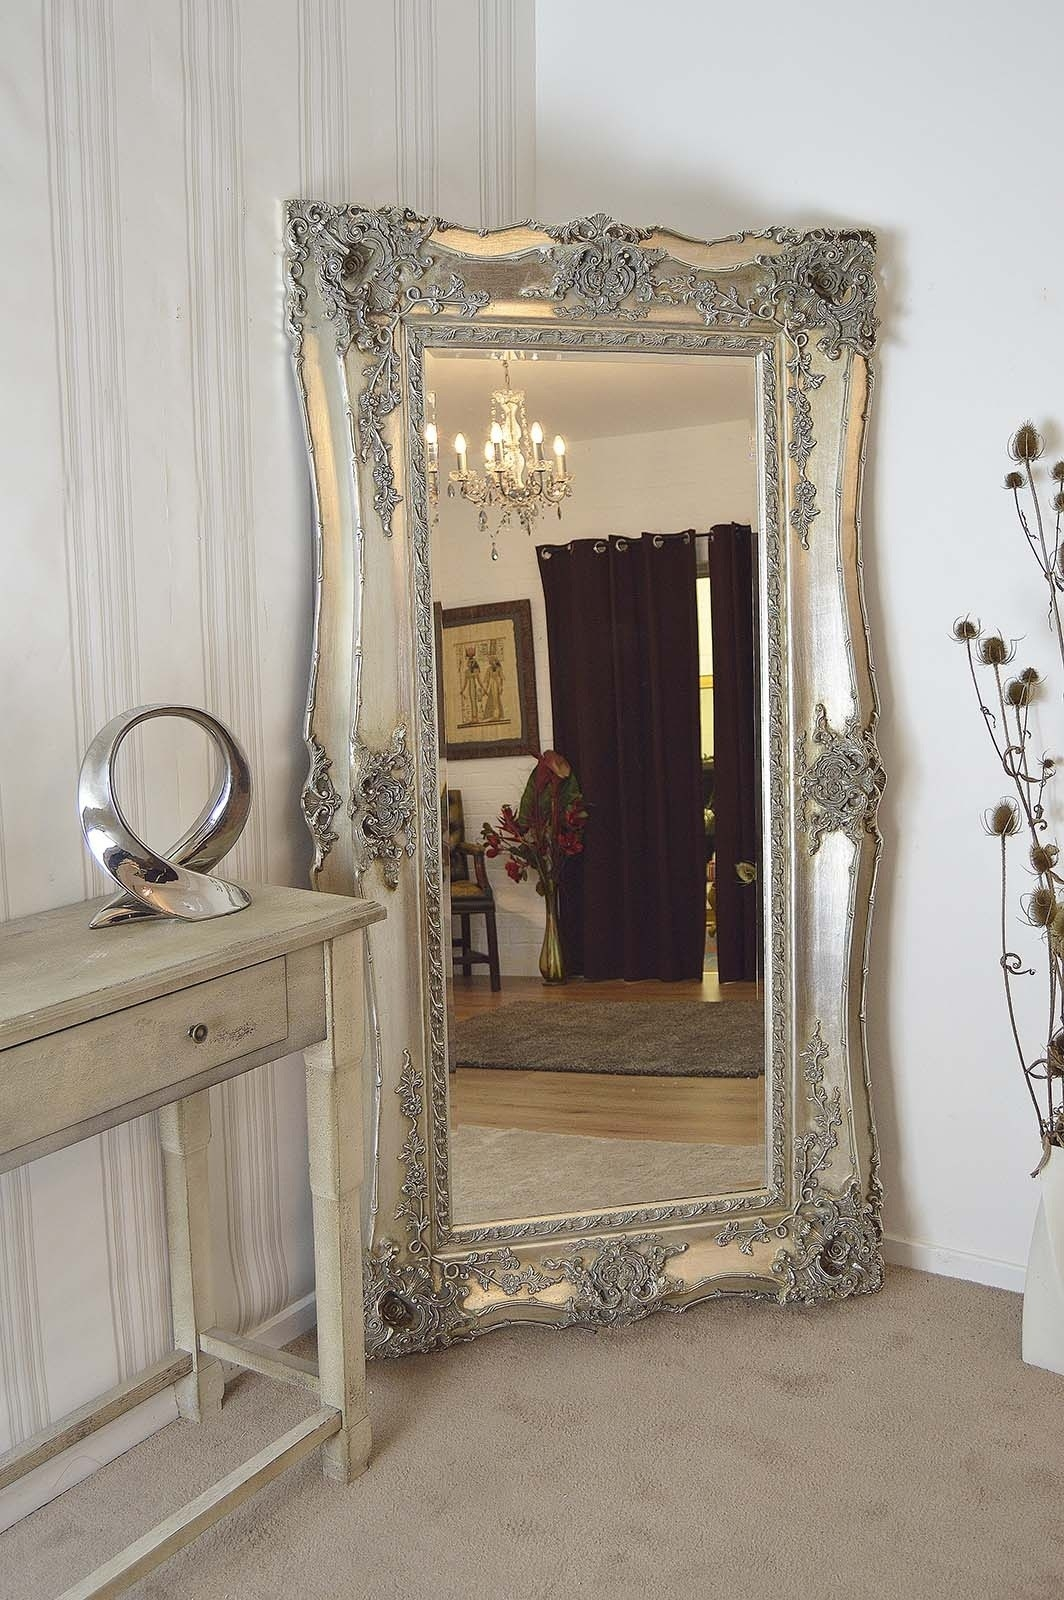 Antique Dressing Mirror Full Length Mirror Ideas